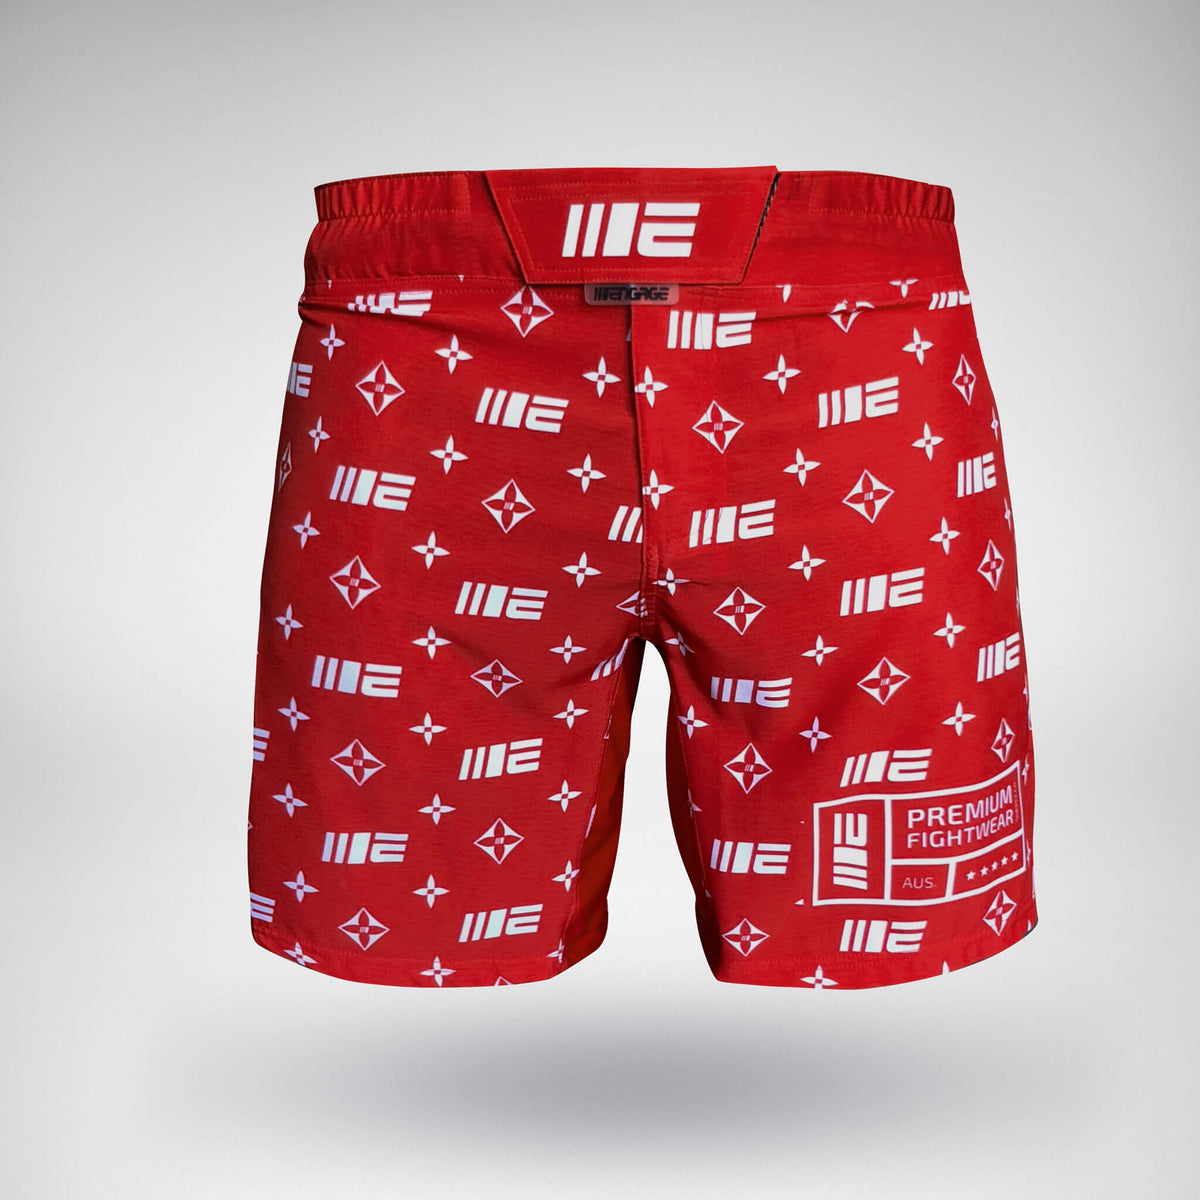 Engage Preme MMA Grappling Short V2.0